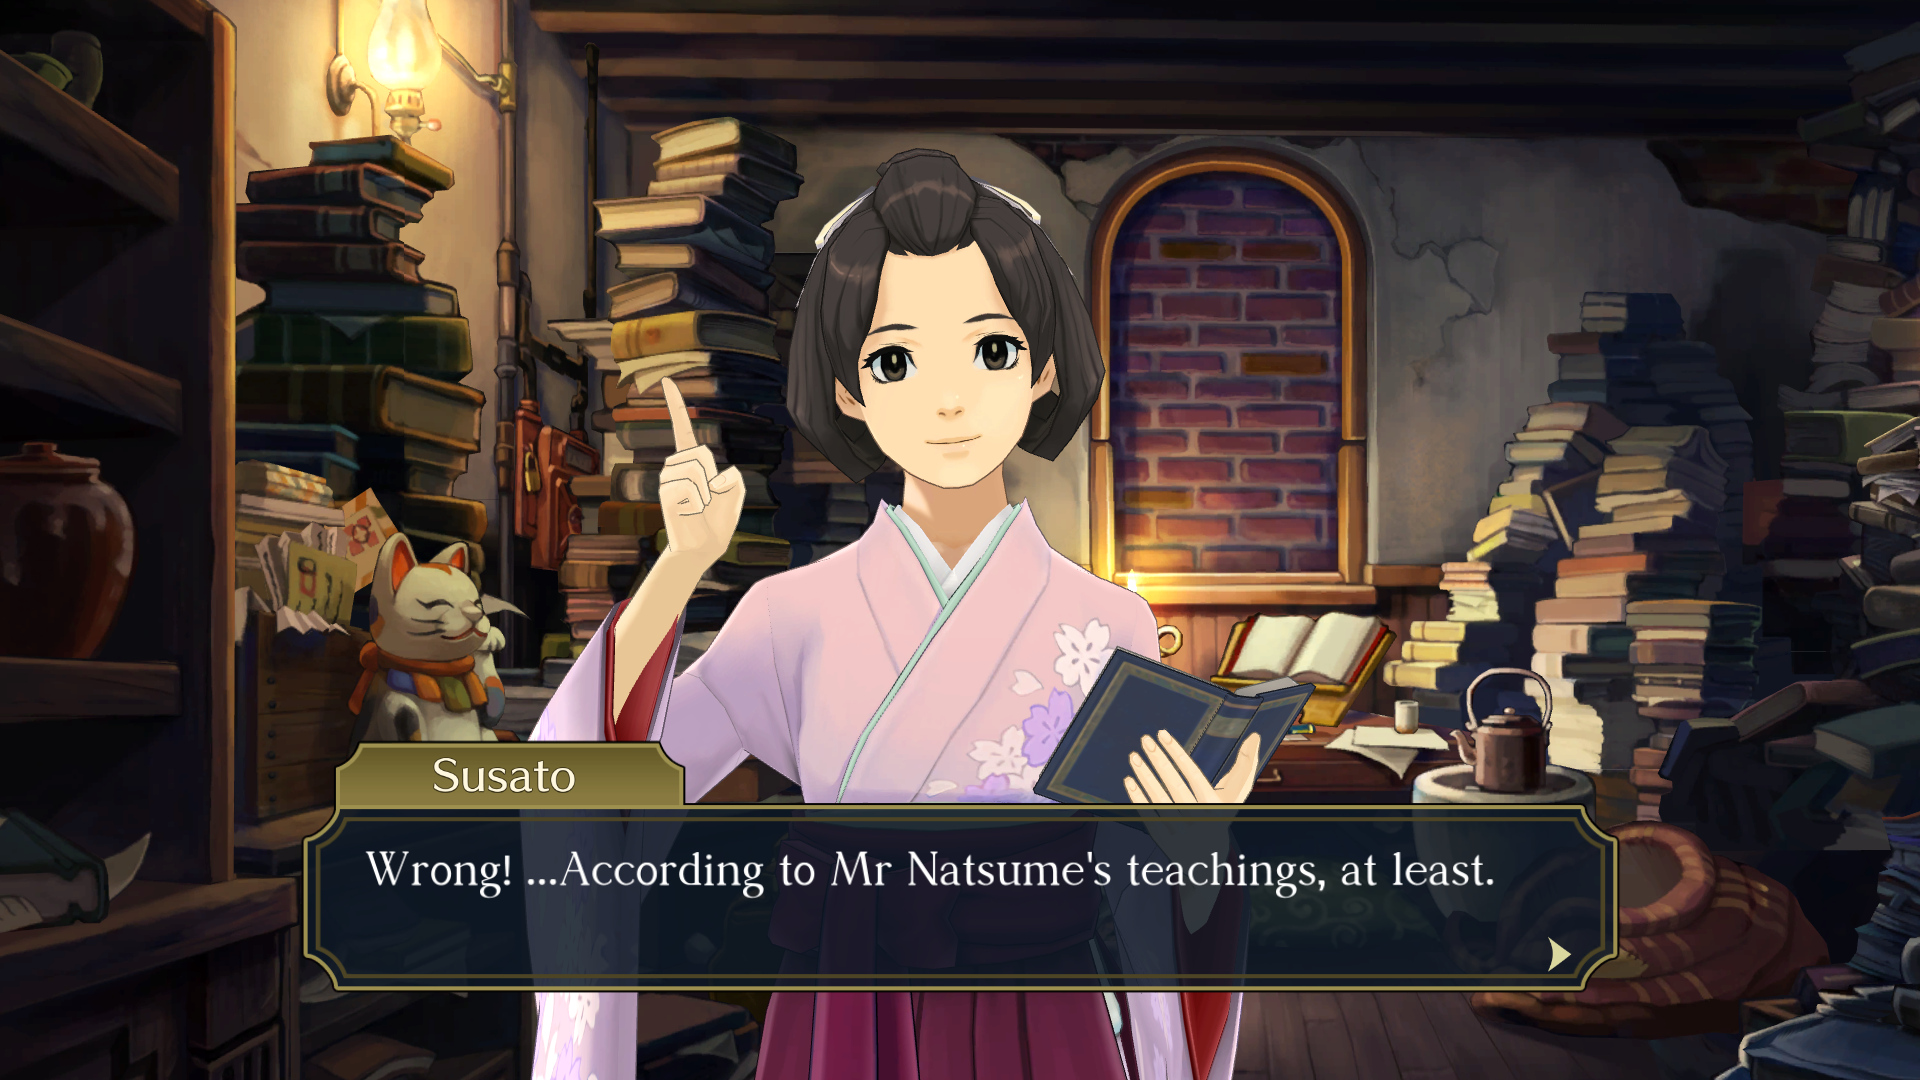 """The Great Ace Attorney Chronicles - Susato says: """"Wrong! ...According to Mr Natsume's teachings, at least."""""""